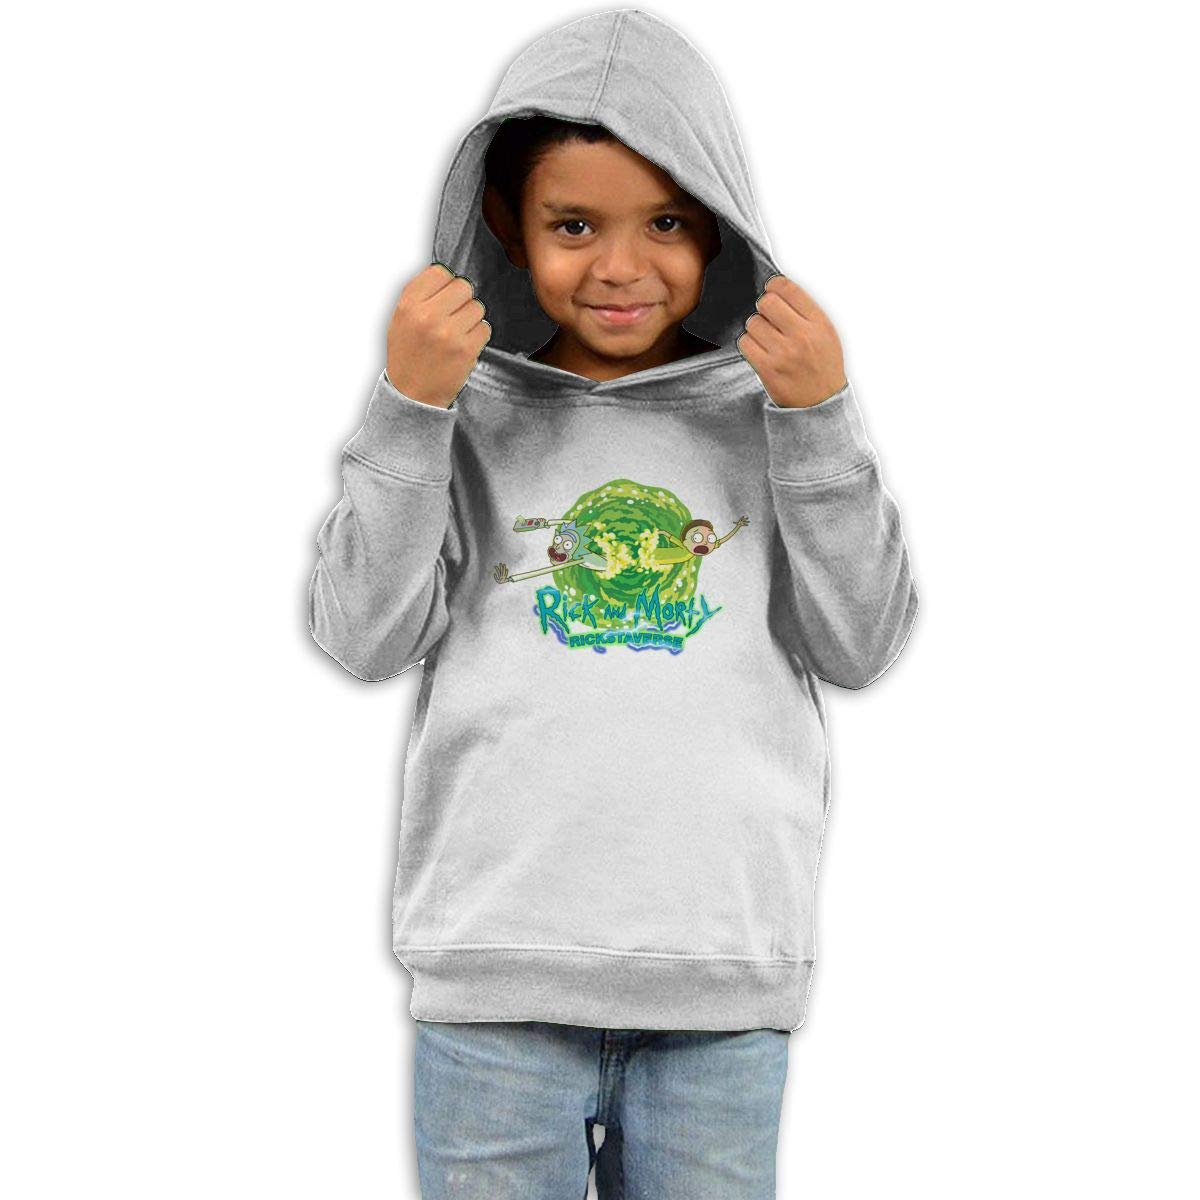 Stacy J. Payne Toddler Rick and Morty Cool Hoodie39 White